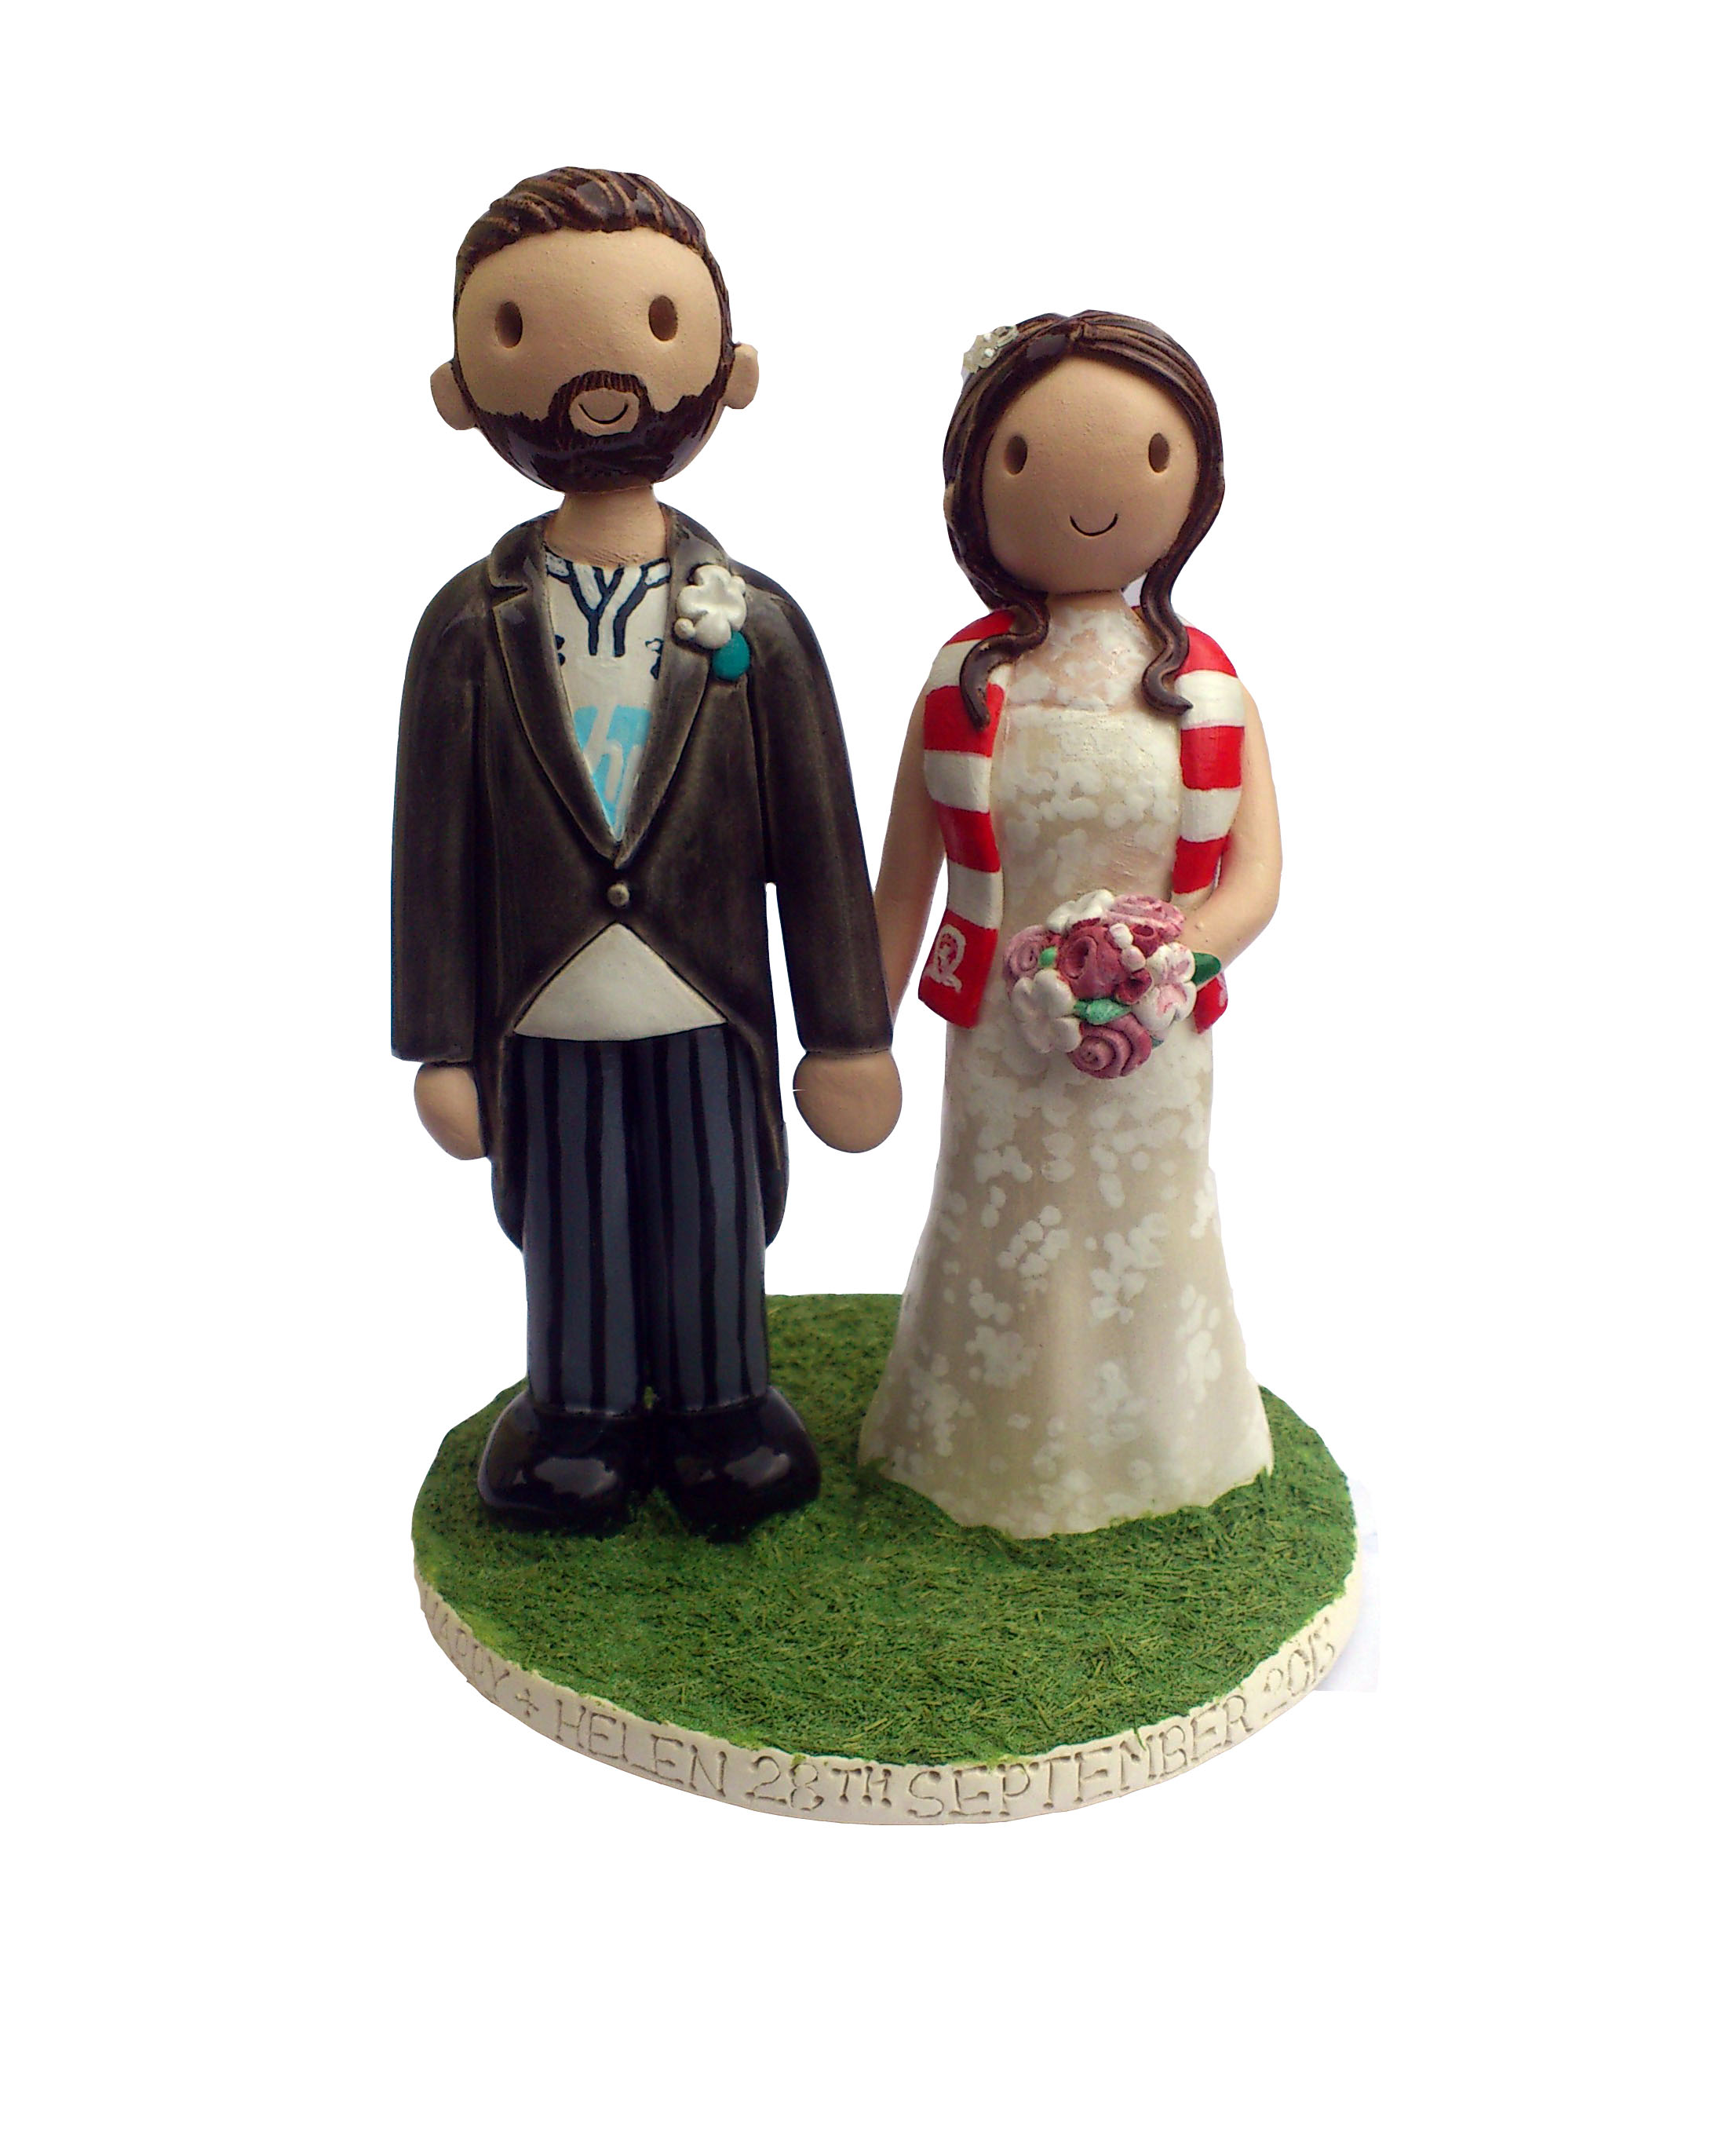 wedding cake figurines wedding cake toppers gallery examples of toppers we 22610